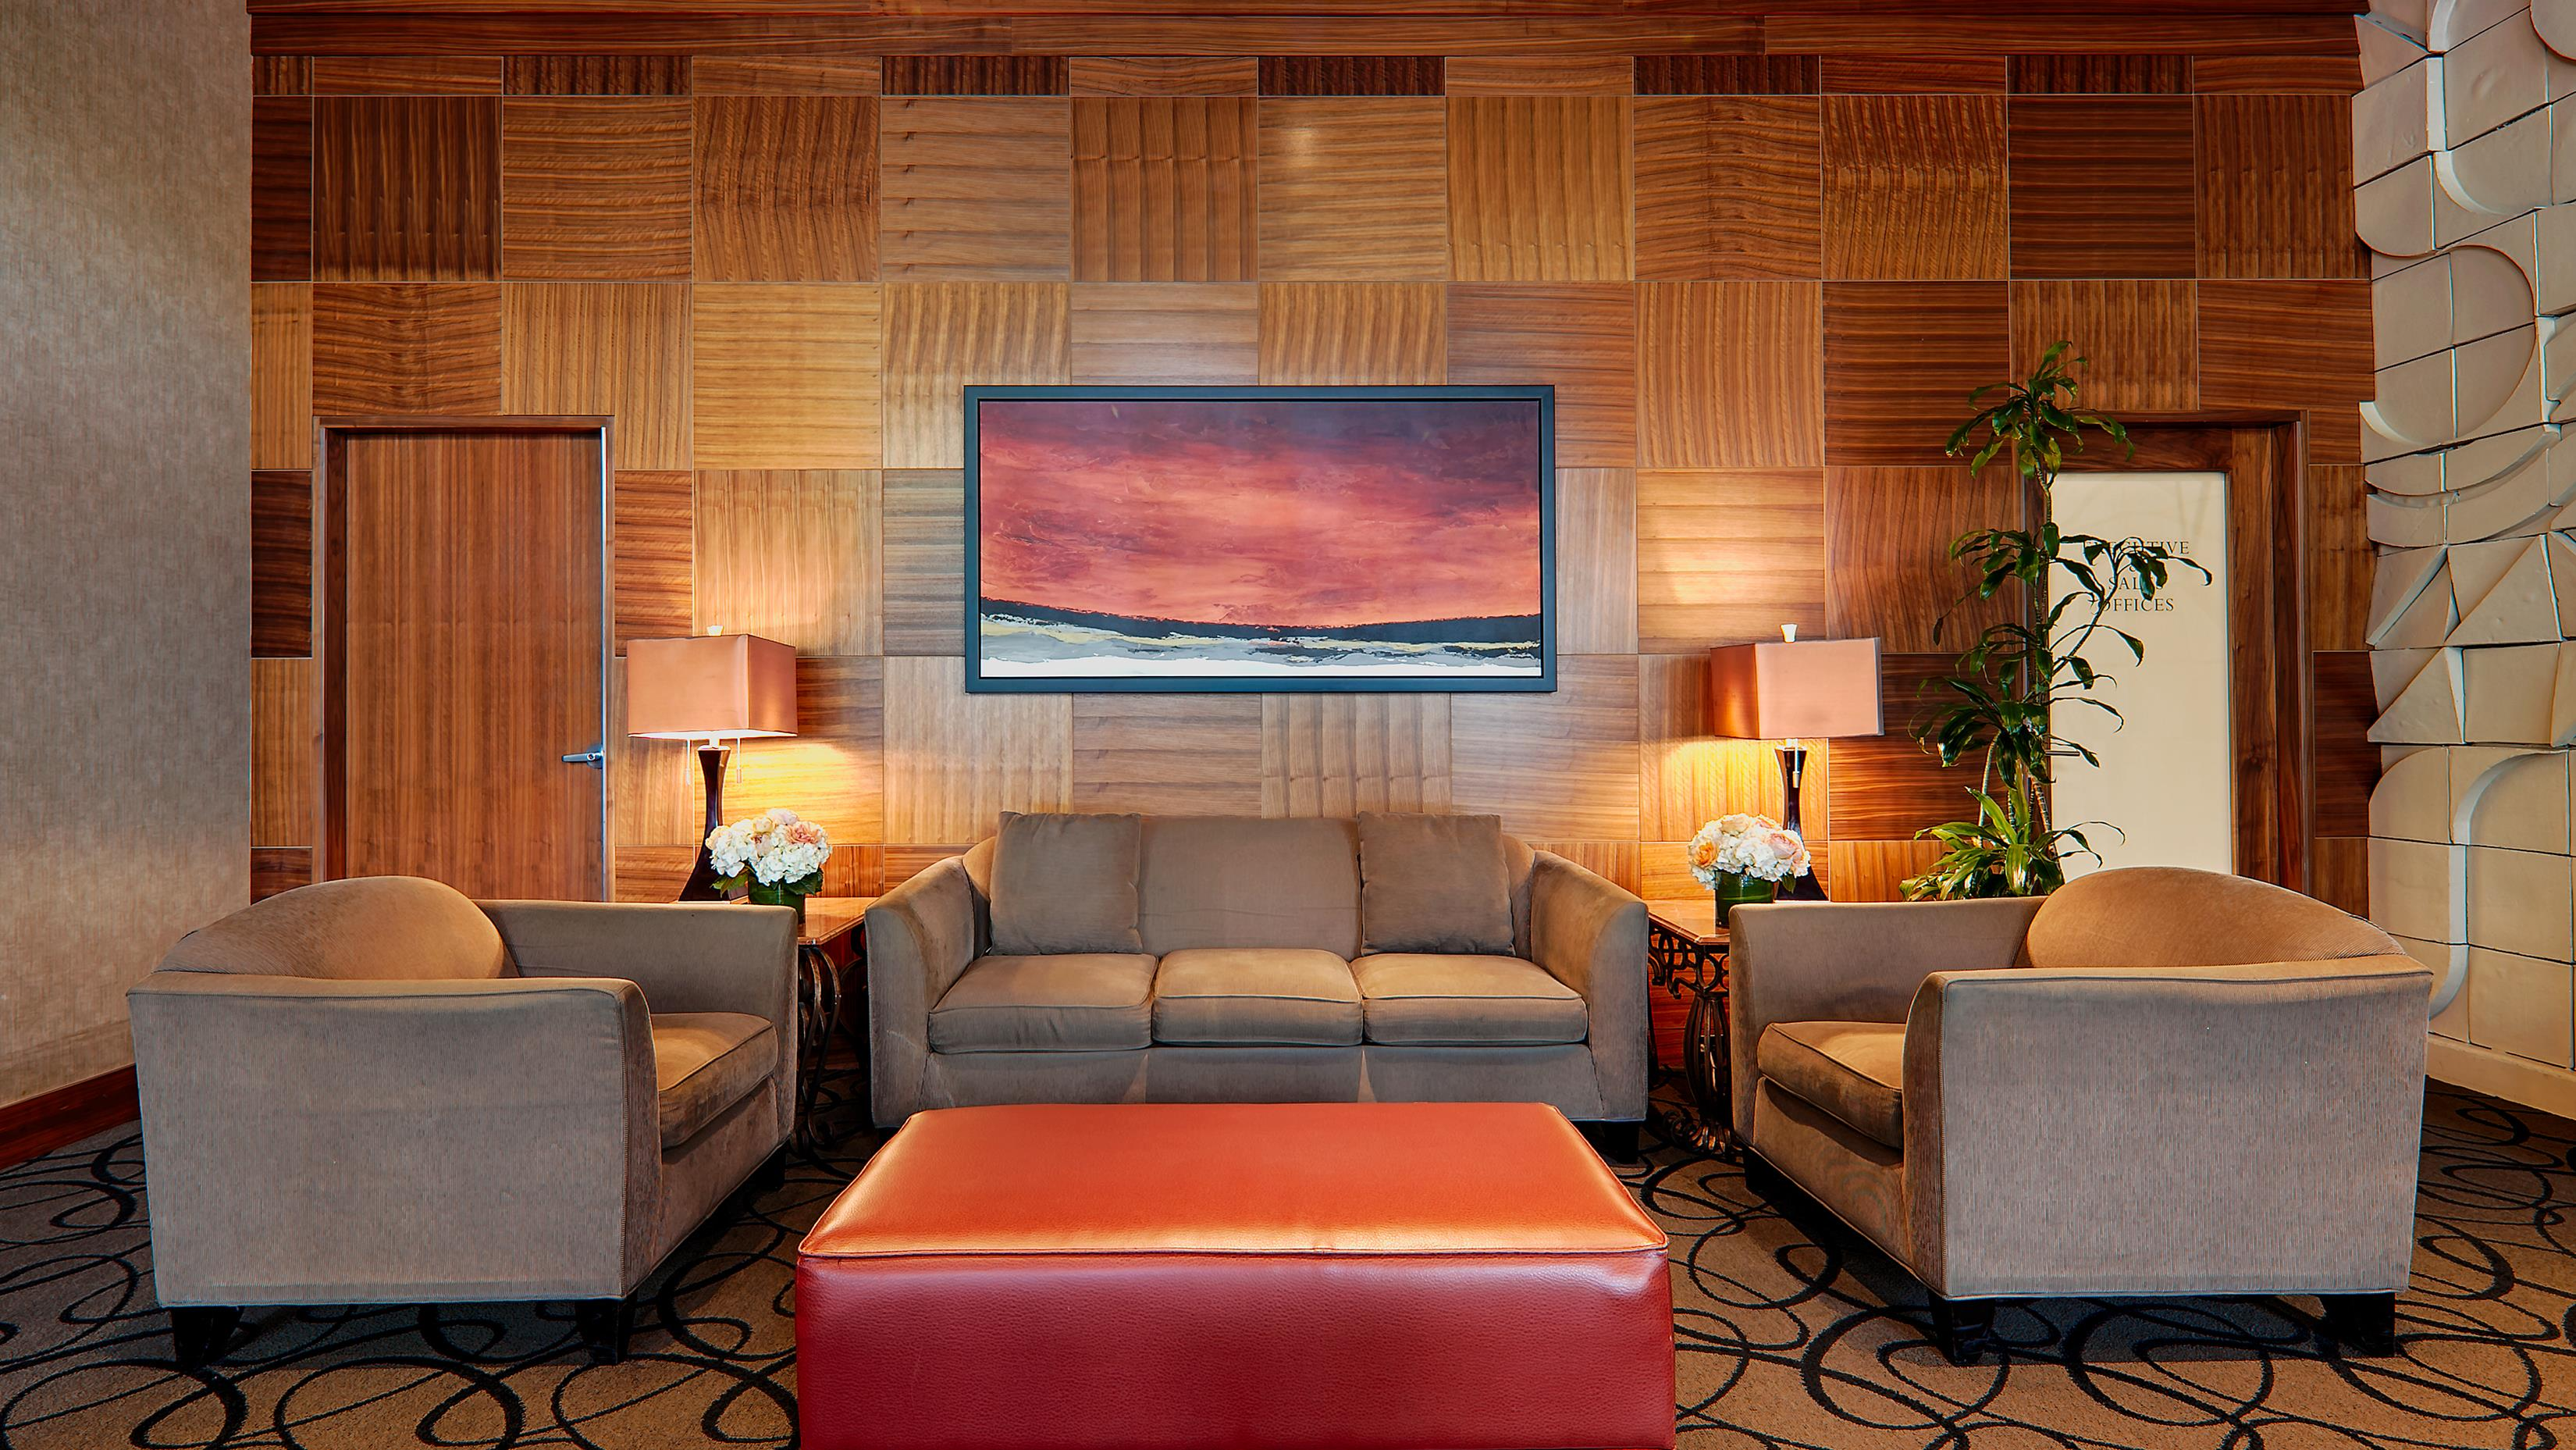 Best Western Plus Chateau Granville Hotel & Suites & Conference Ctr. in Vancouver: Lobby